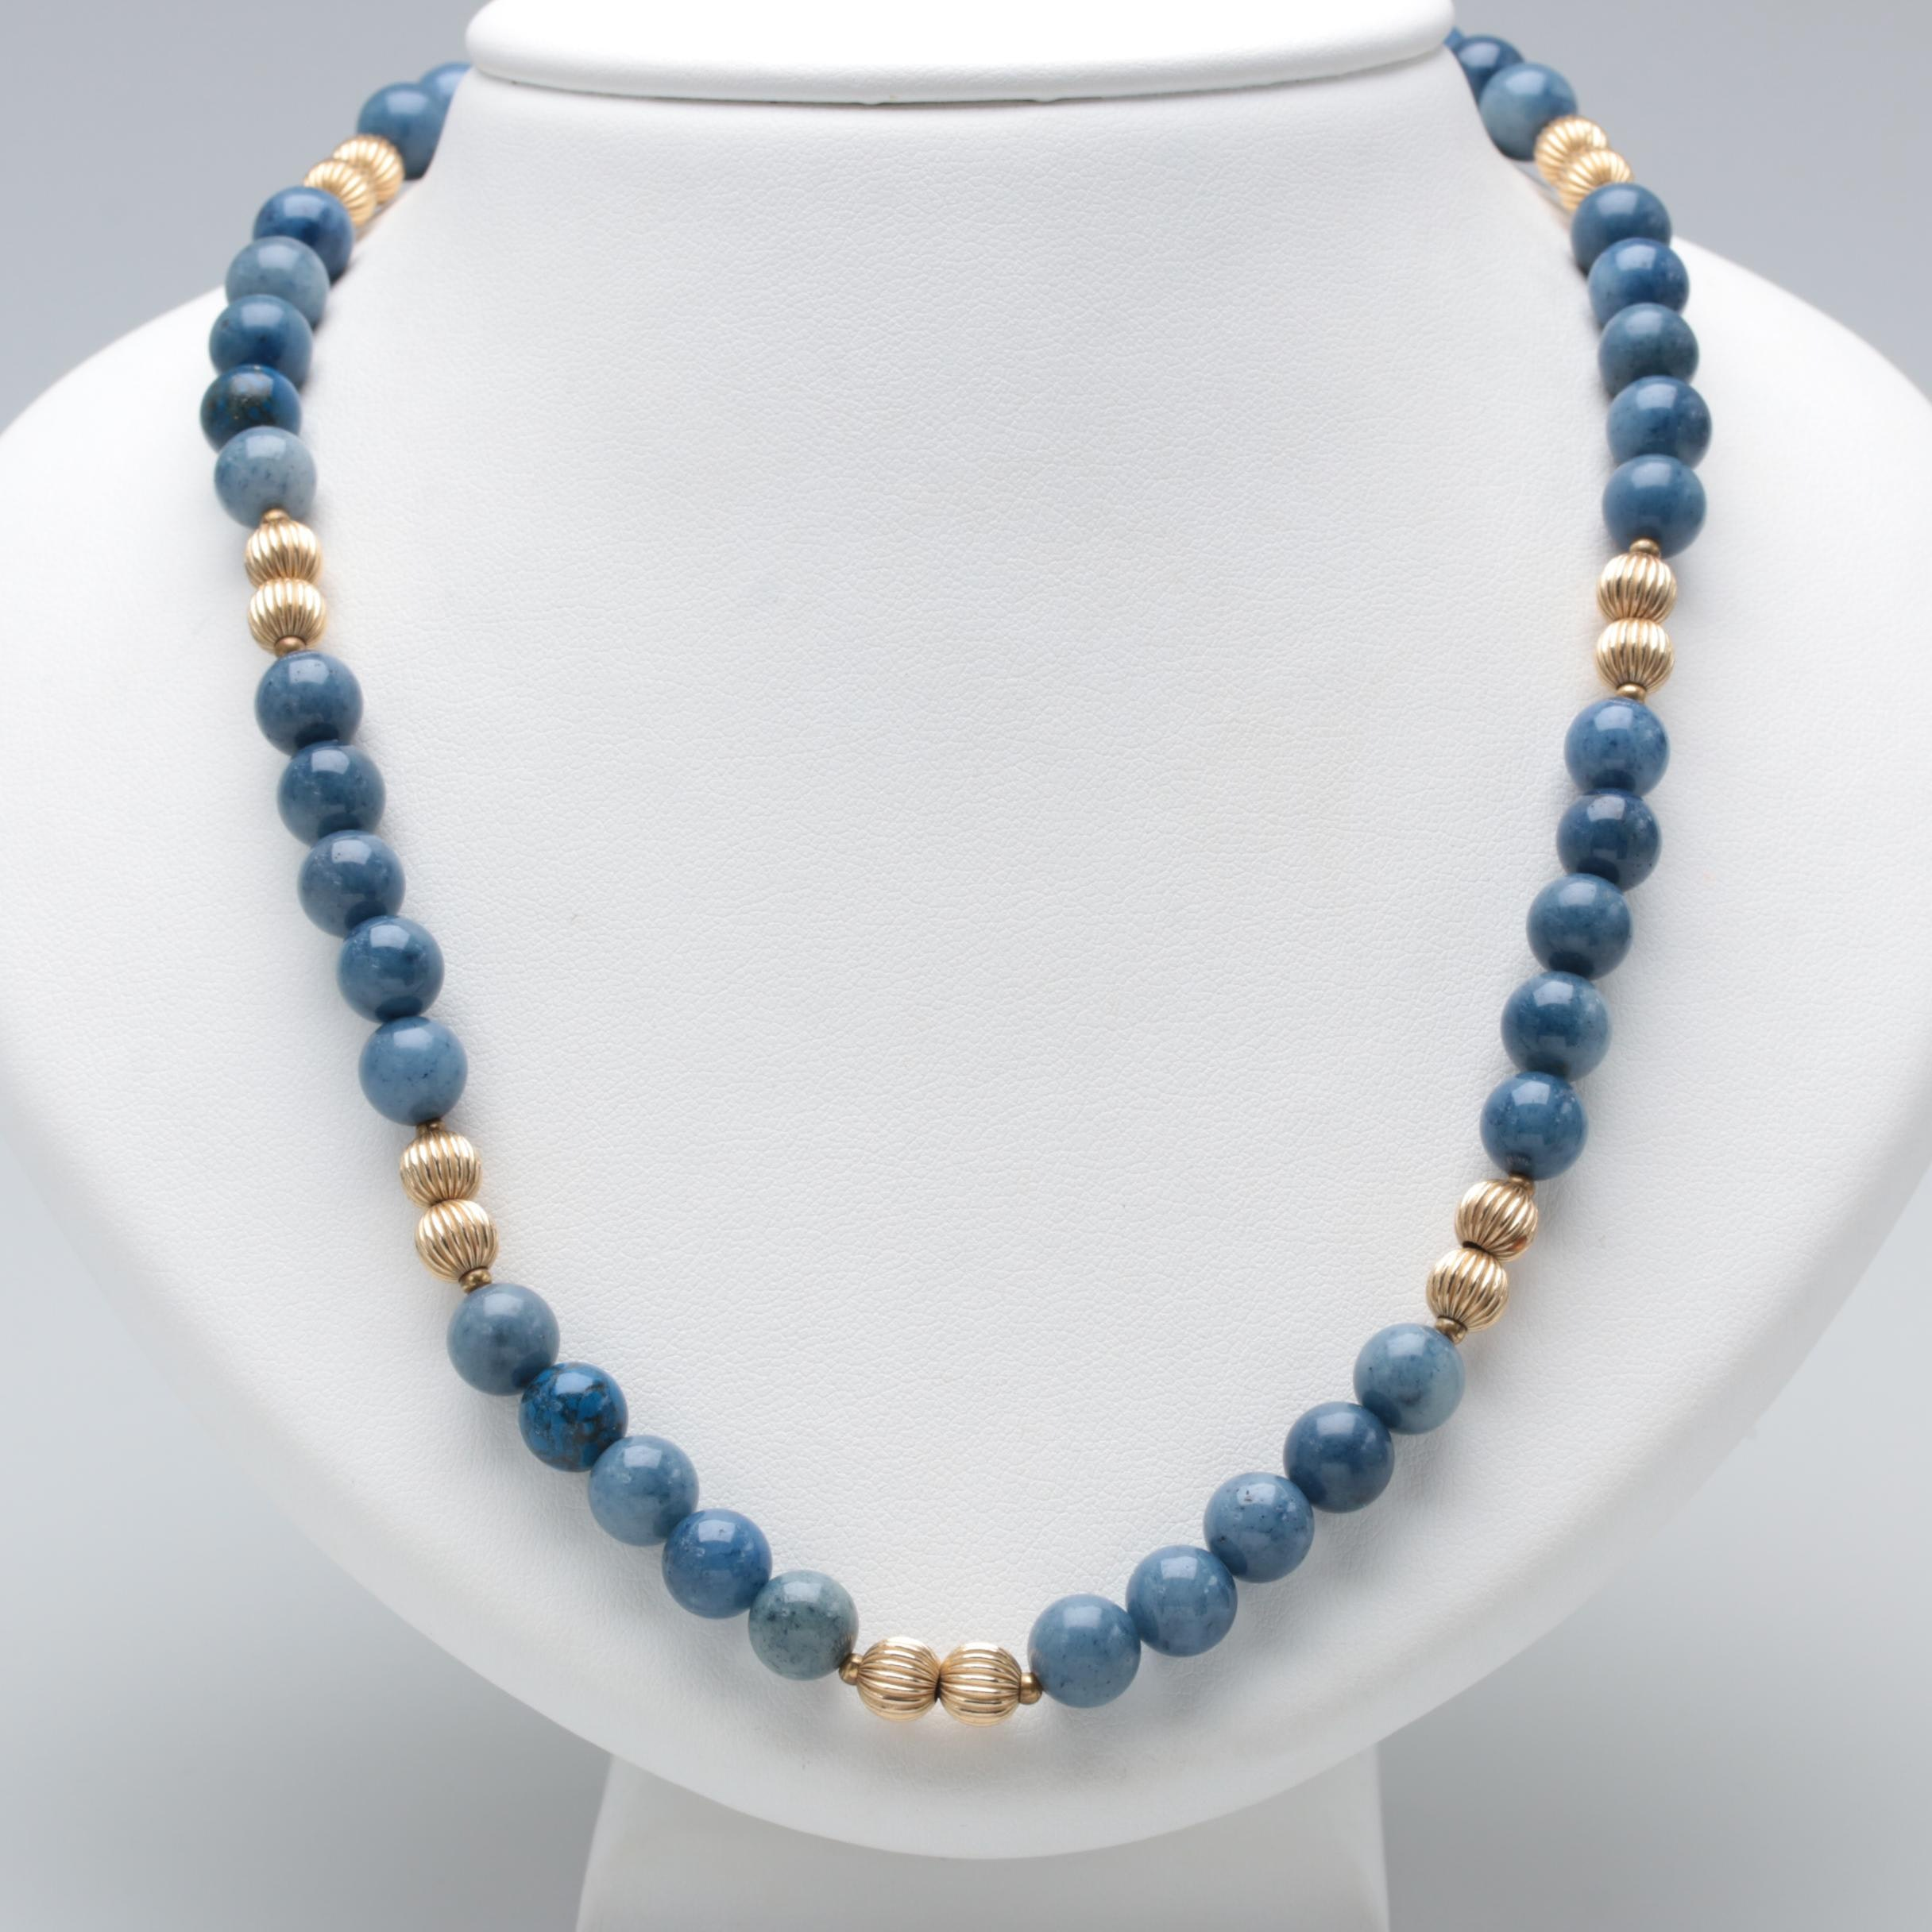 Gold Tone Quartz Necklace with Sterling Silver Clasp